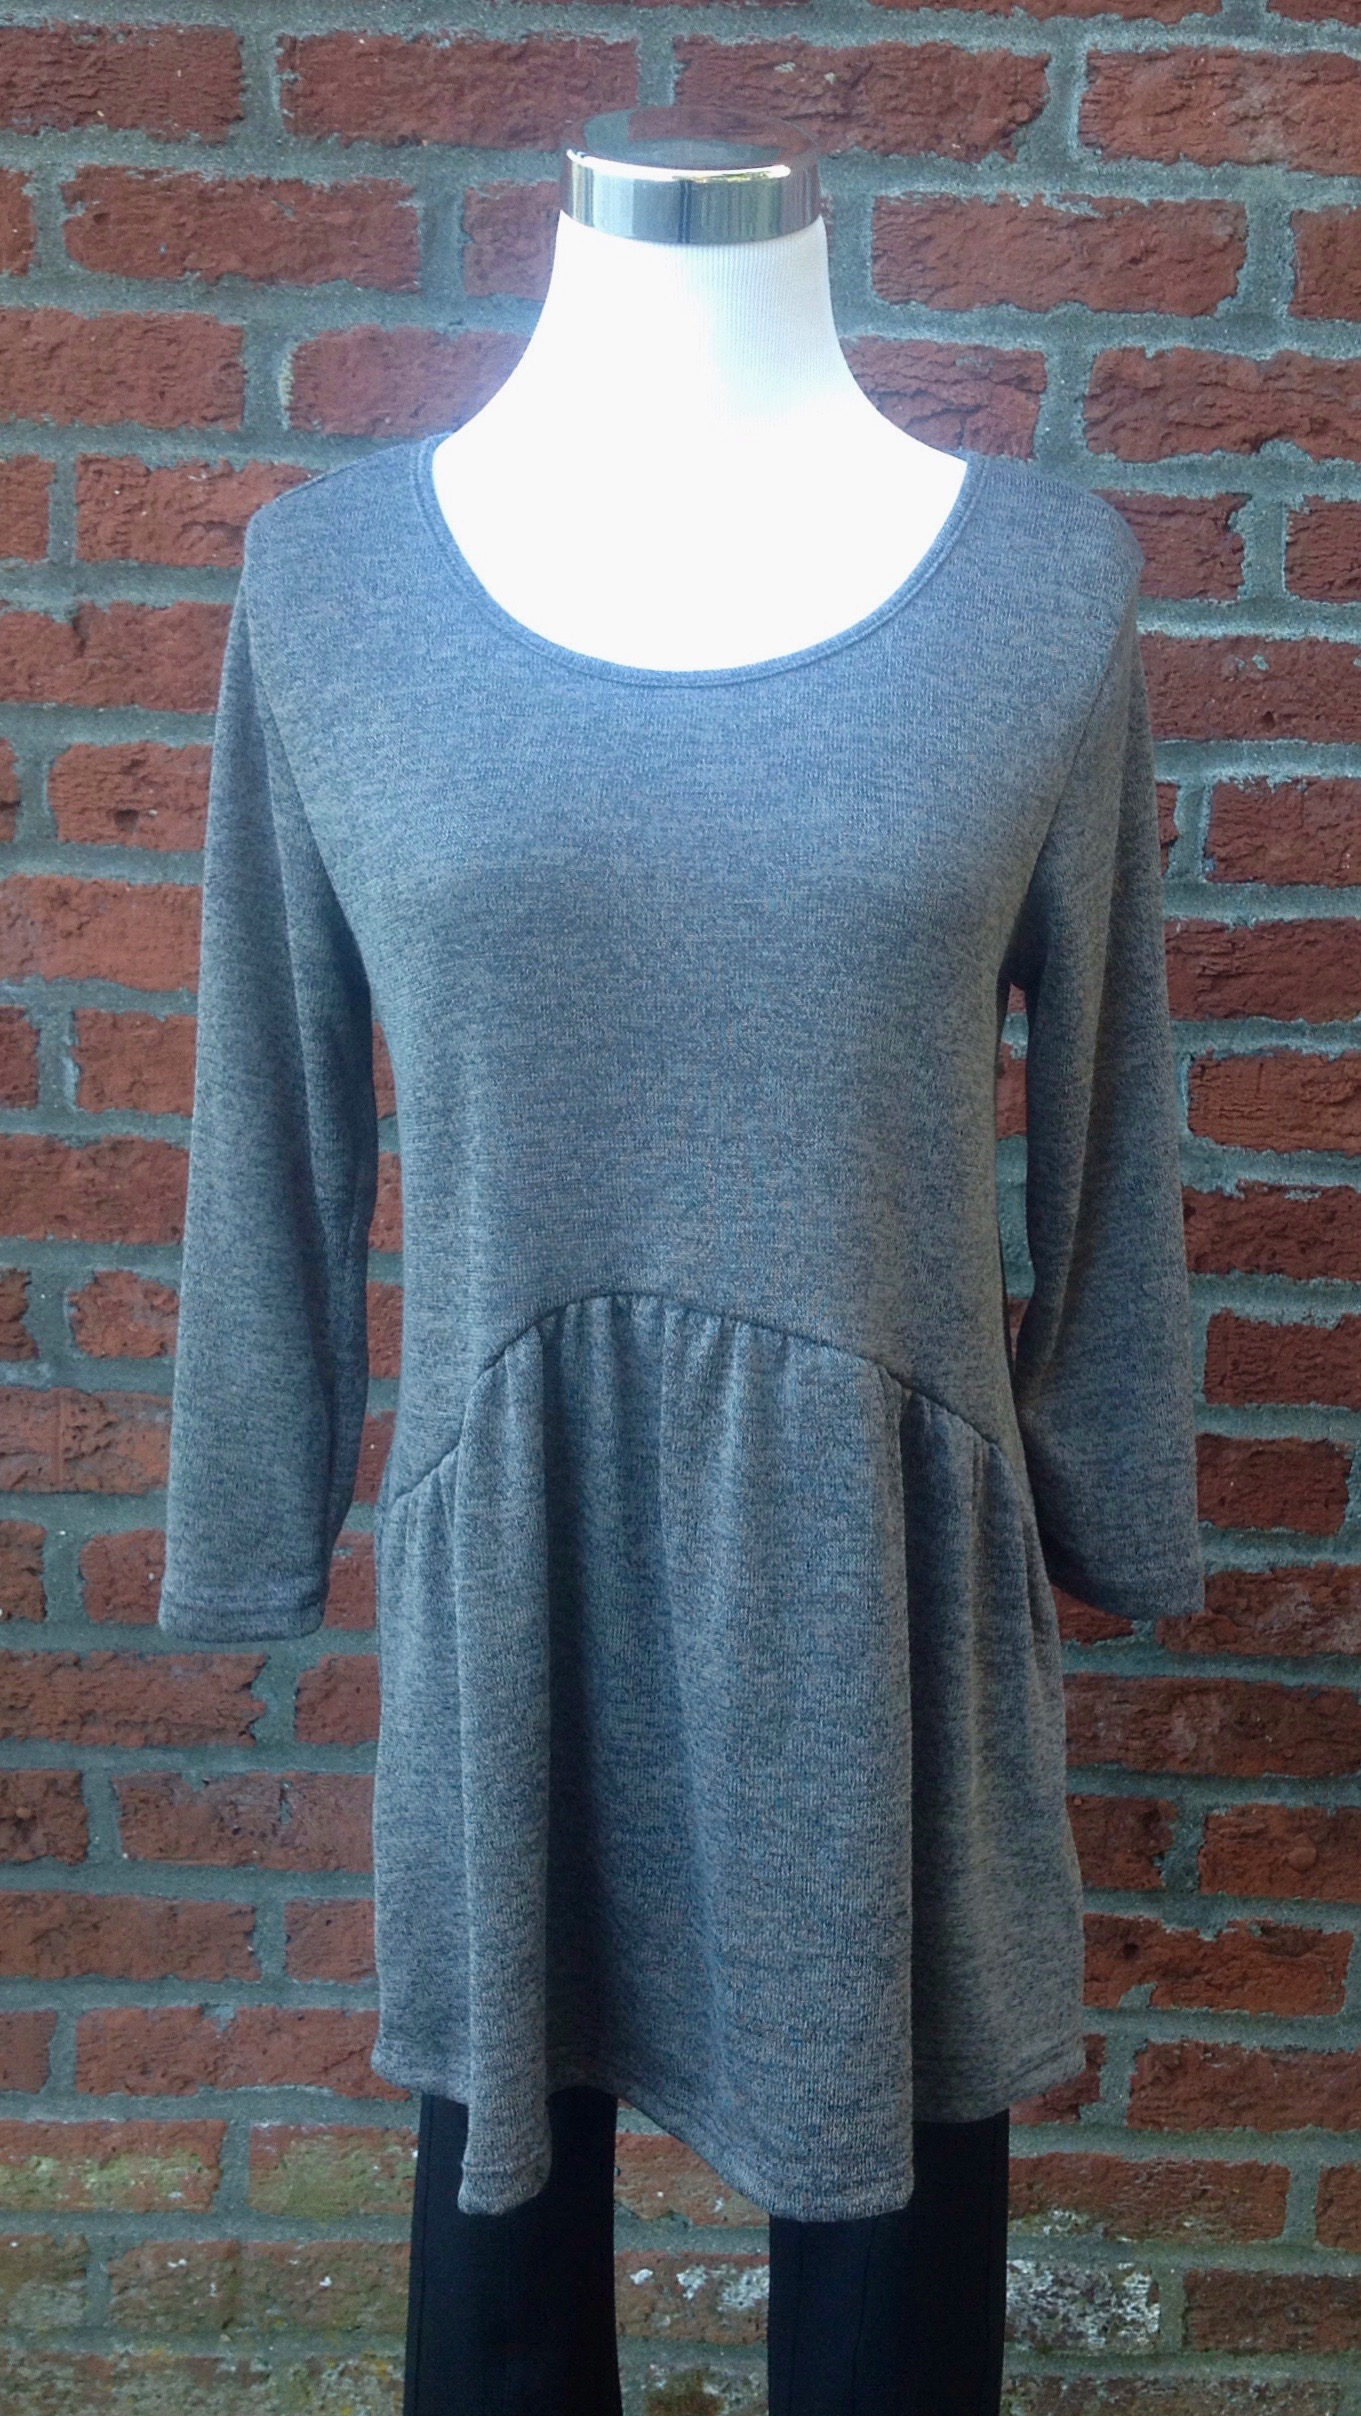 Charcoal sweater with 3/4 sleeves and gathered, asymmetrical waistline, $32